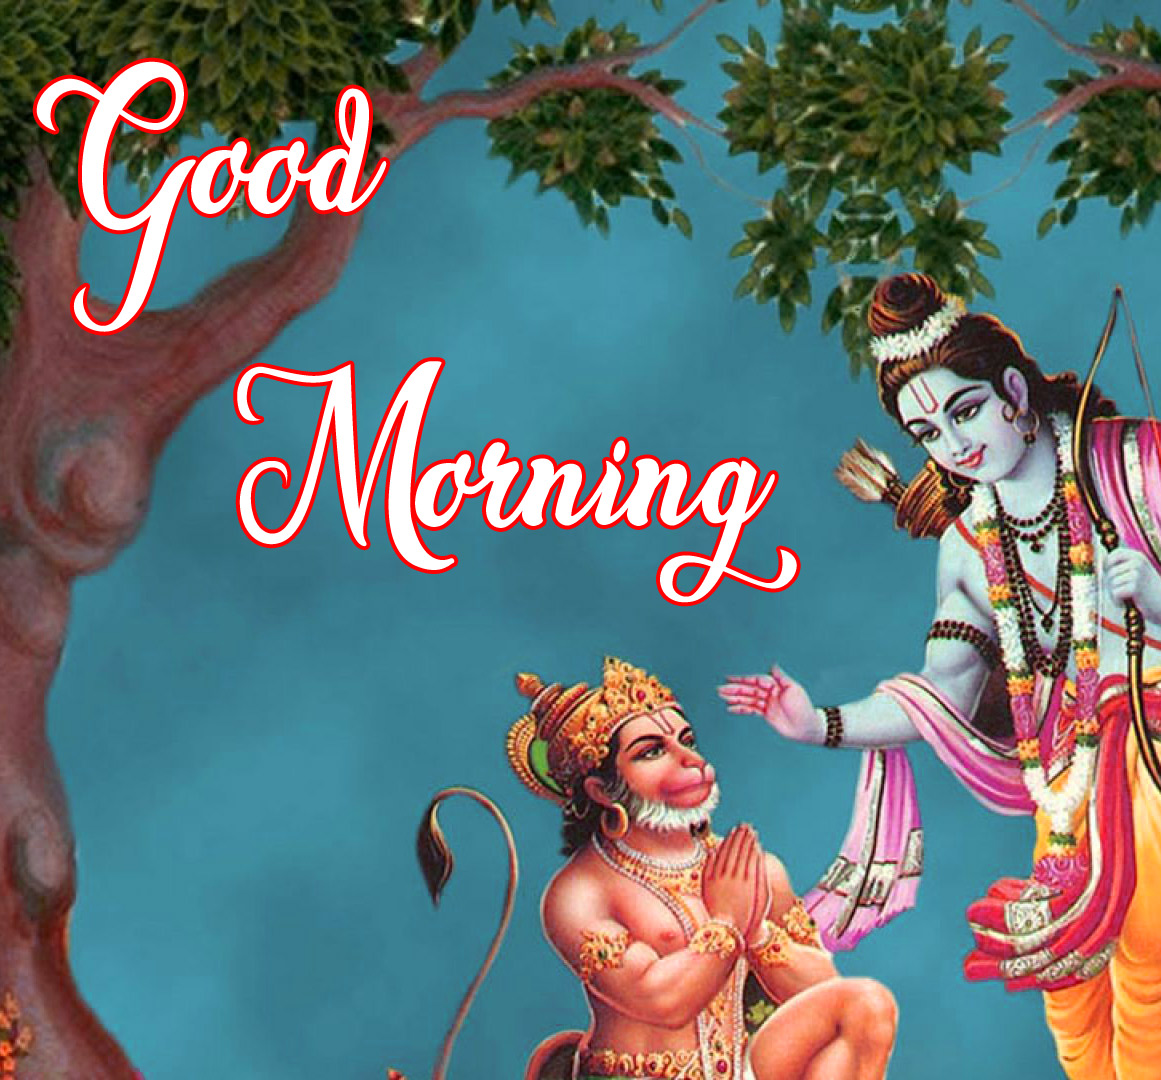 Lord Hanuman Ji good morning 11